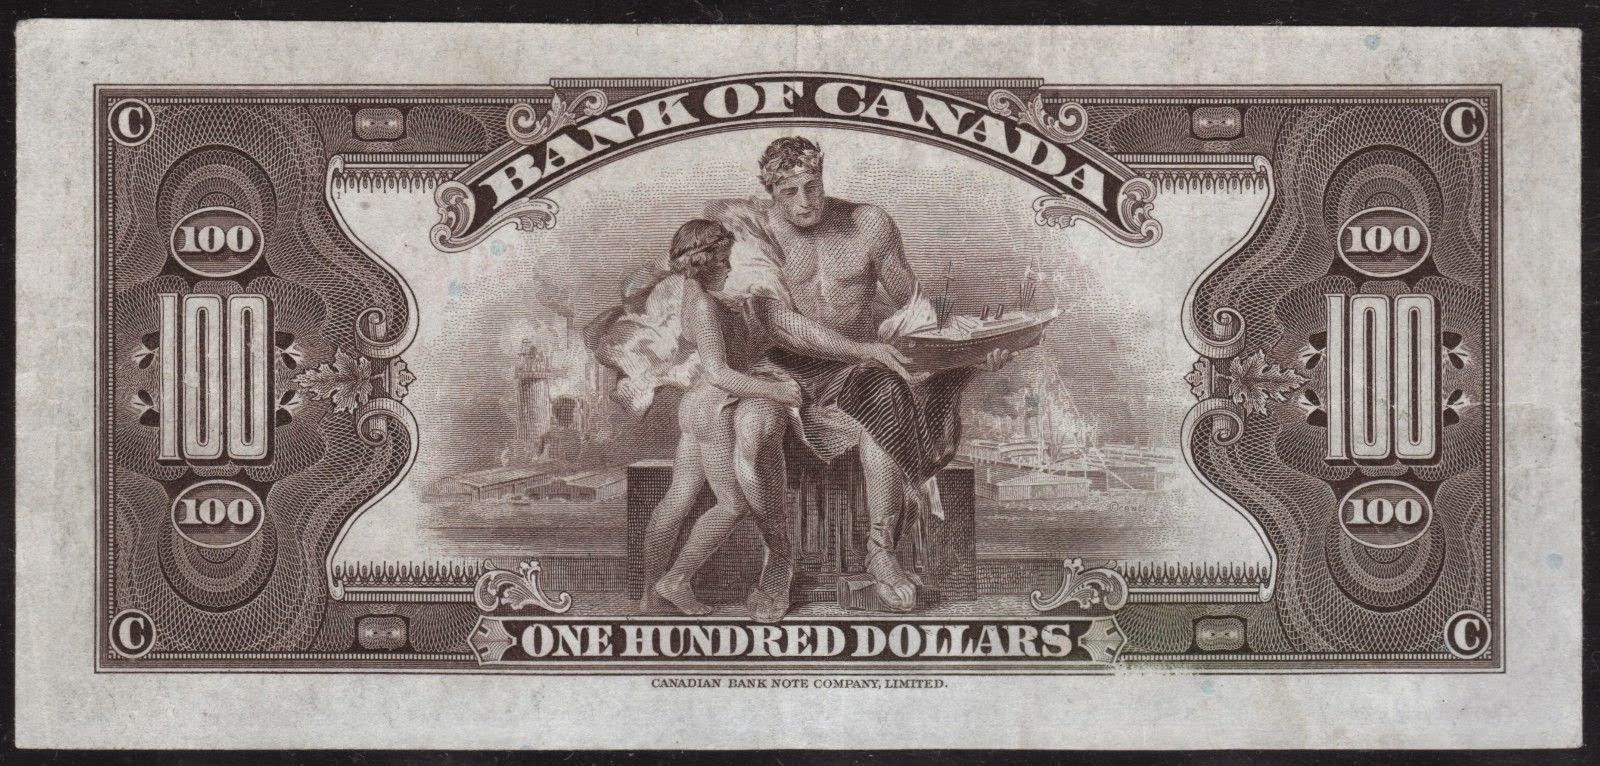 Bank of Canada 100 Dollar Bill Note 1935